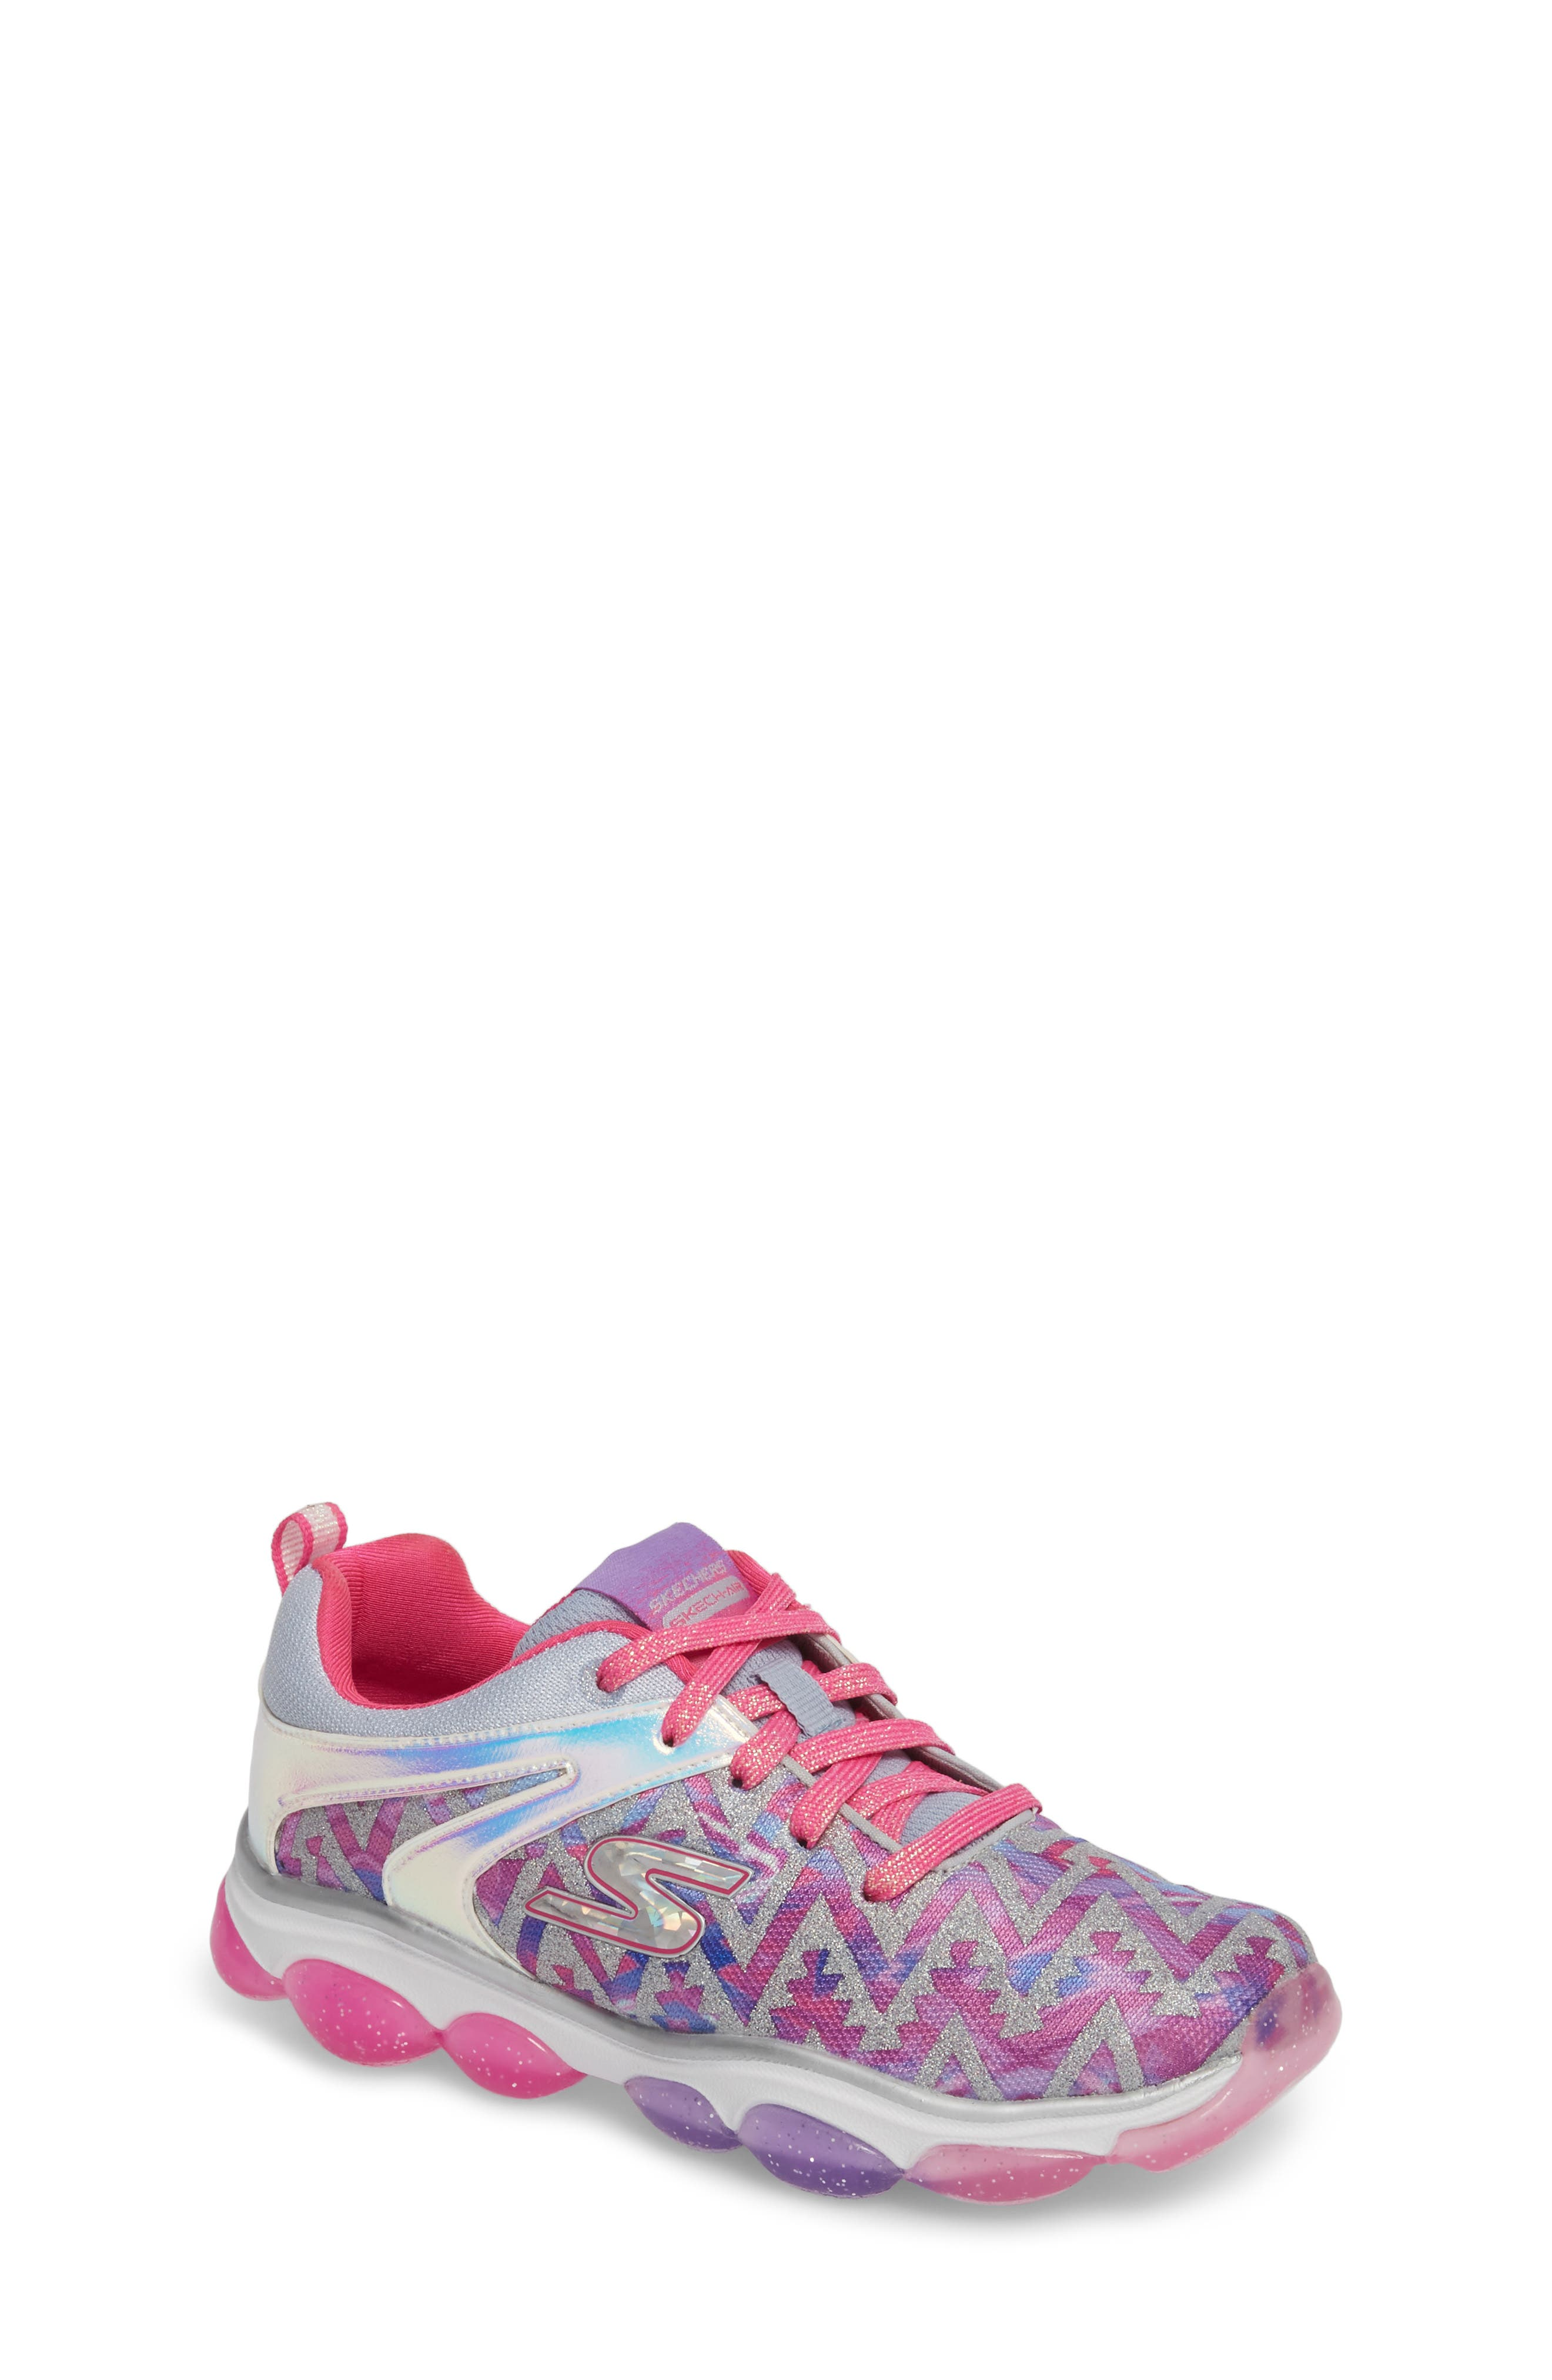 Skech Air Groove Sneaker,                         Main,                         color, Pink/ Multi